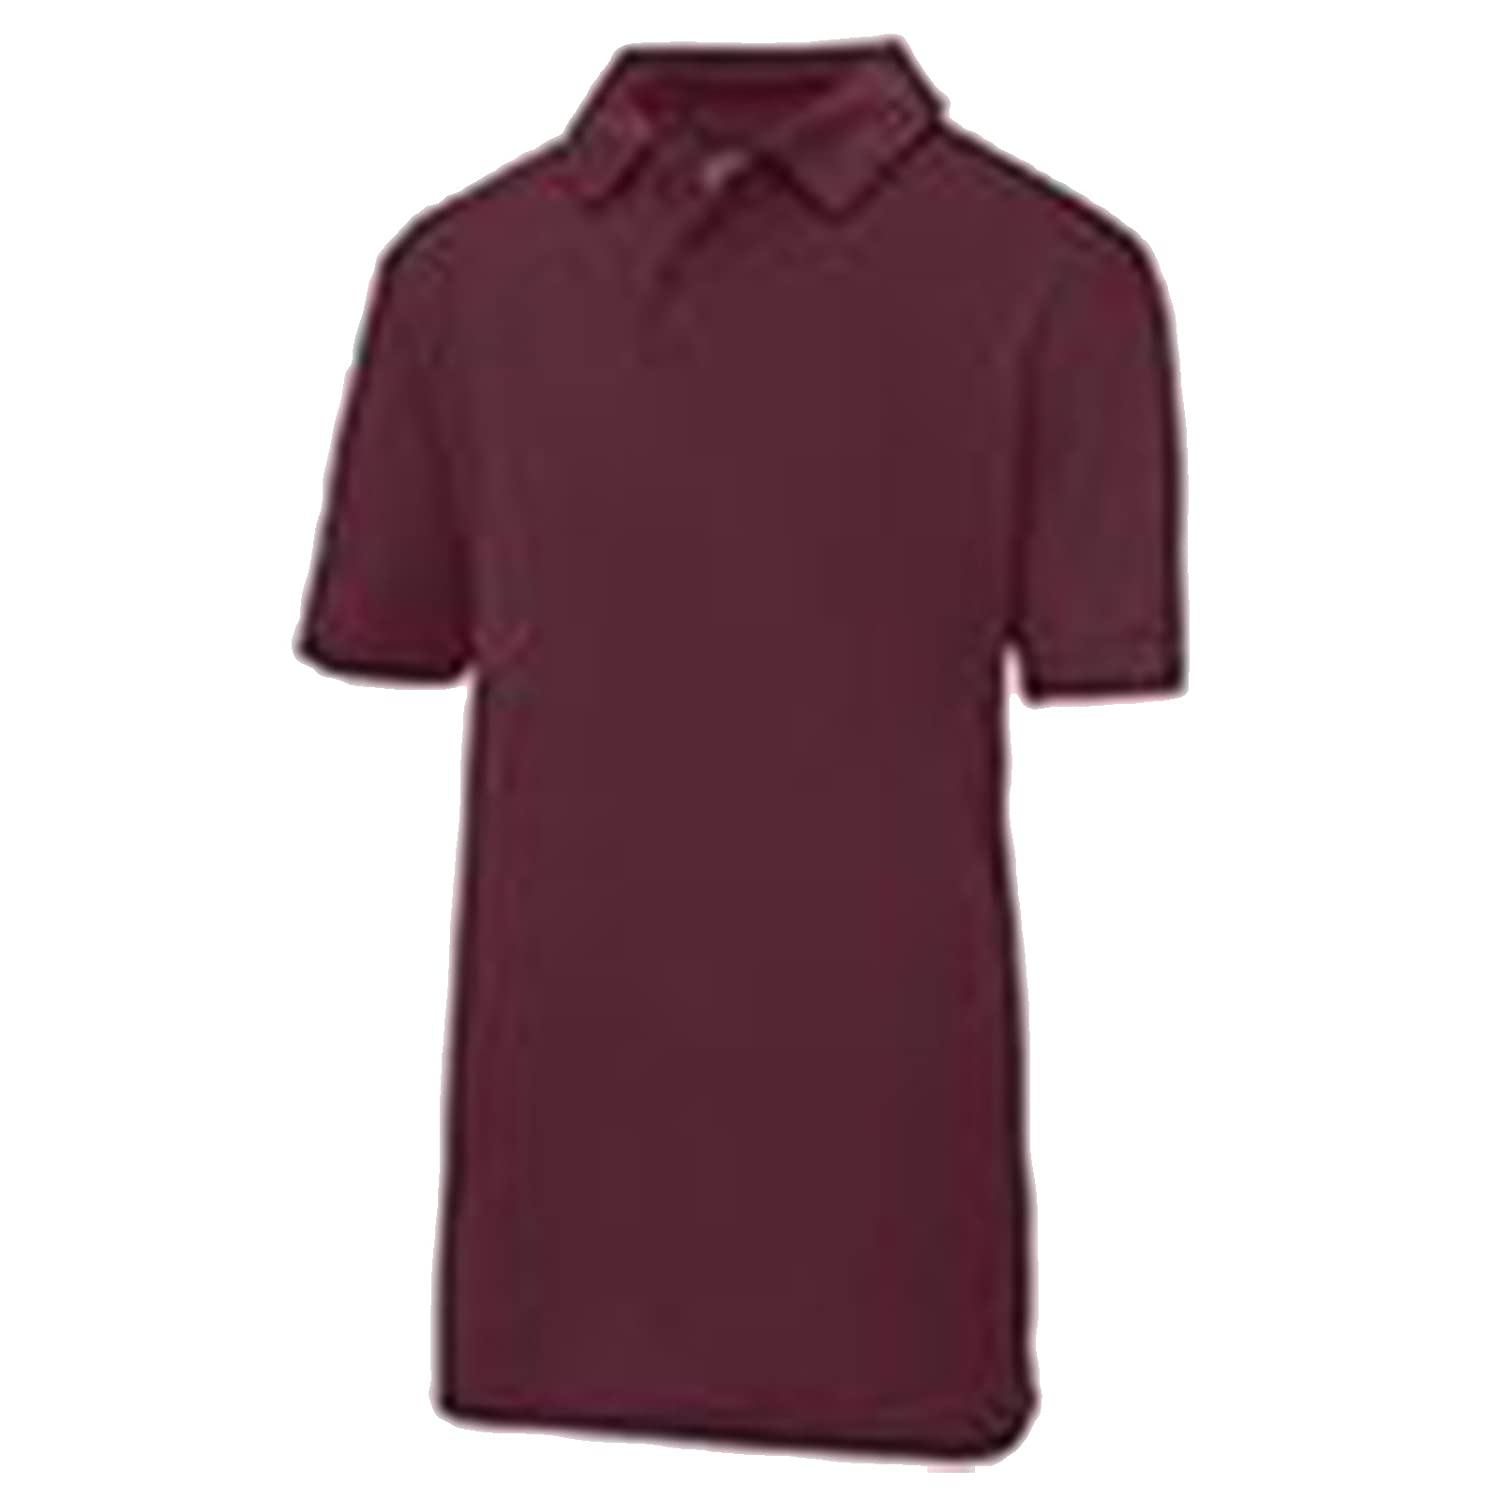 Awdis Kids Cool Polo T Shirt Self Coloured Buttons And Sleeve Design